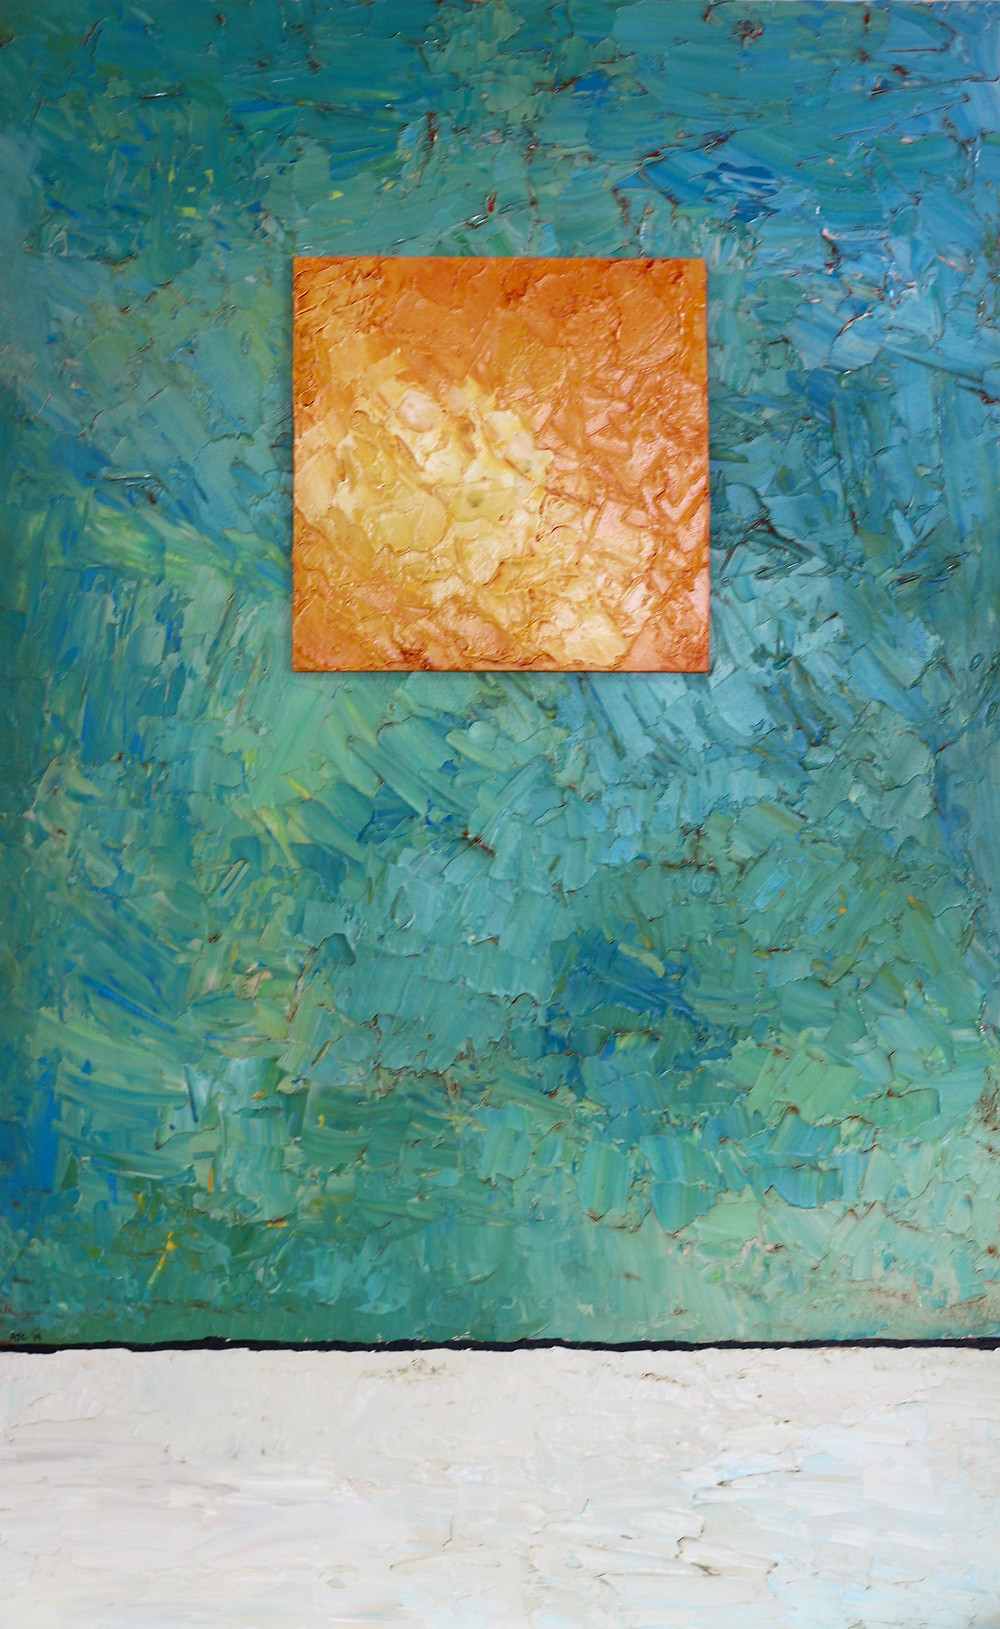 abstract art, saligia art gallery nelson new zealand, contemporary painting